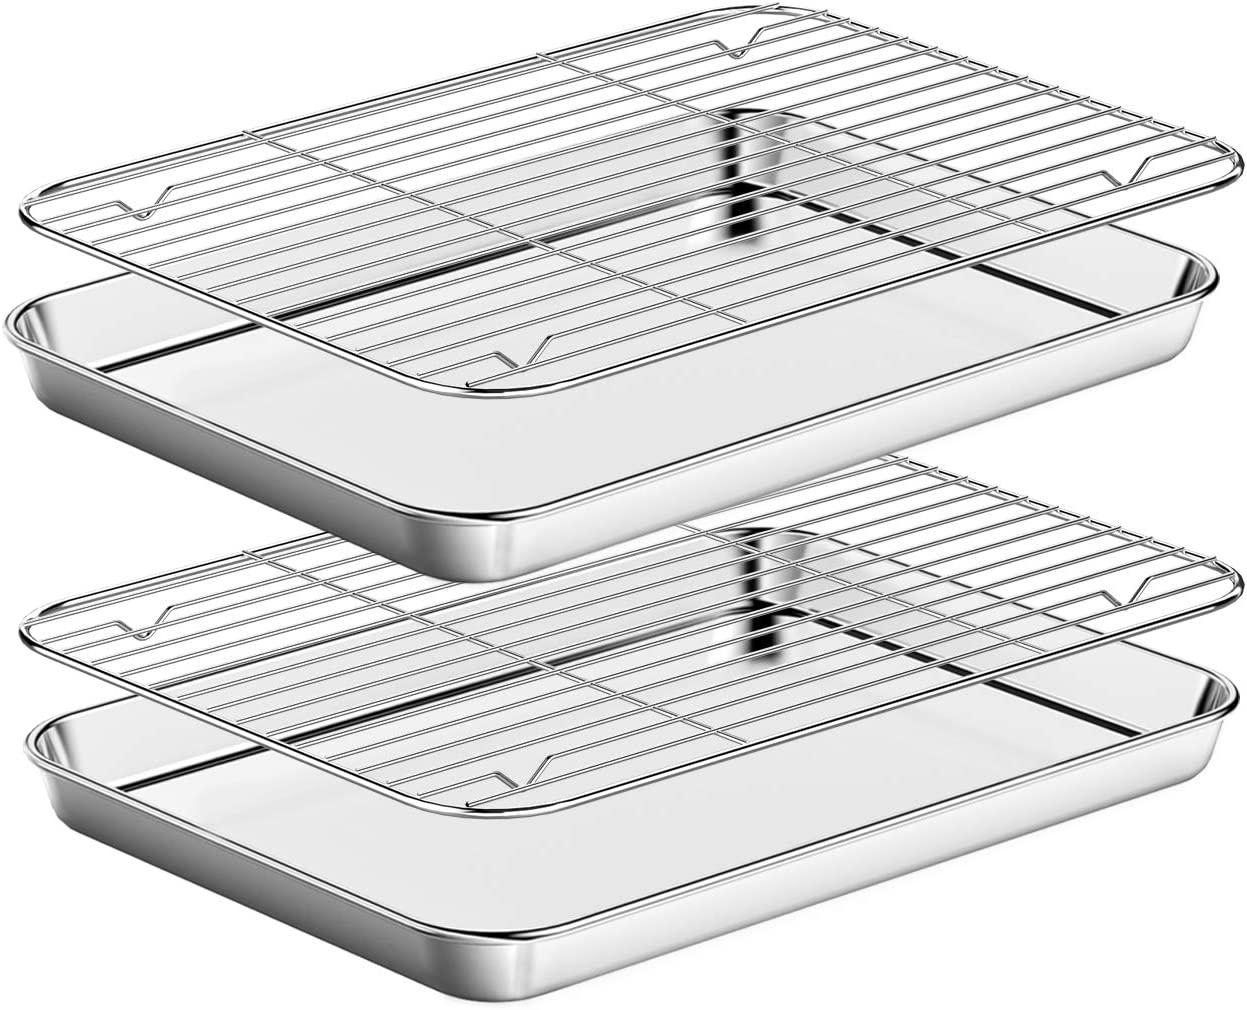 Baking Sheet with Rack Set [2 Pans + 2 Racks ] HKJ Chef Stainless Steel Cookie Sheet Baking Pan Tray with Cooling Rack, Size 12.5 x 10 x 1 Inch, Non Toxic & Heavy Duty & Easy Clean